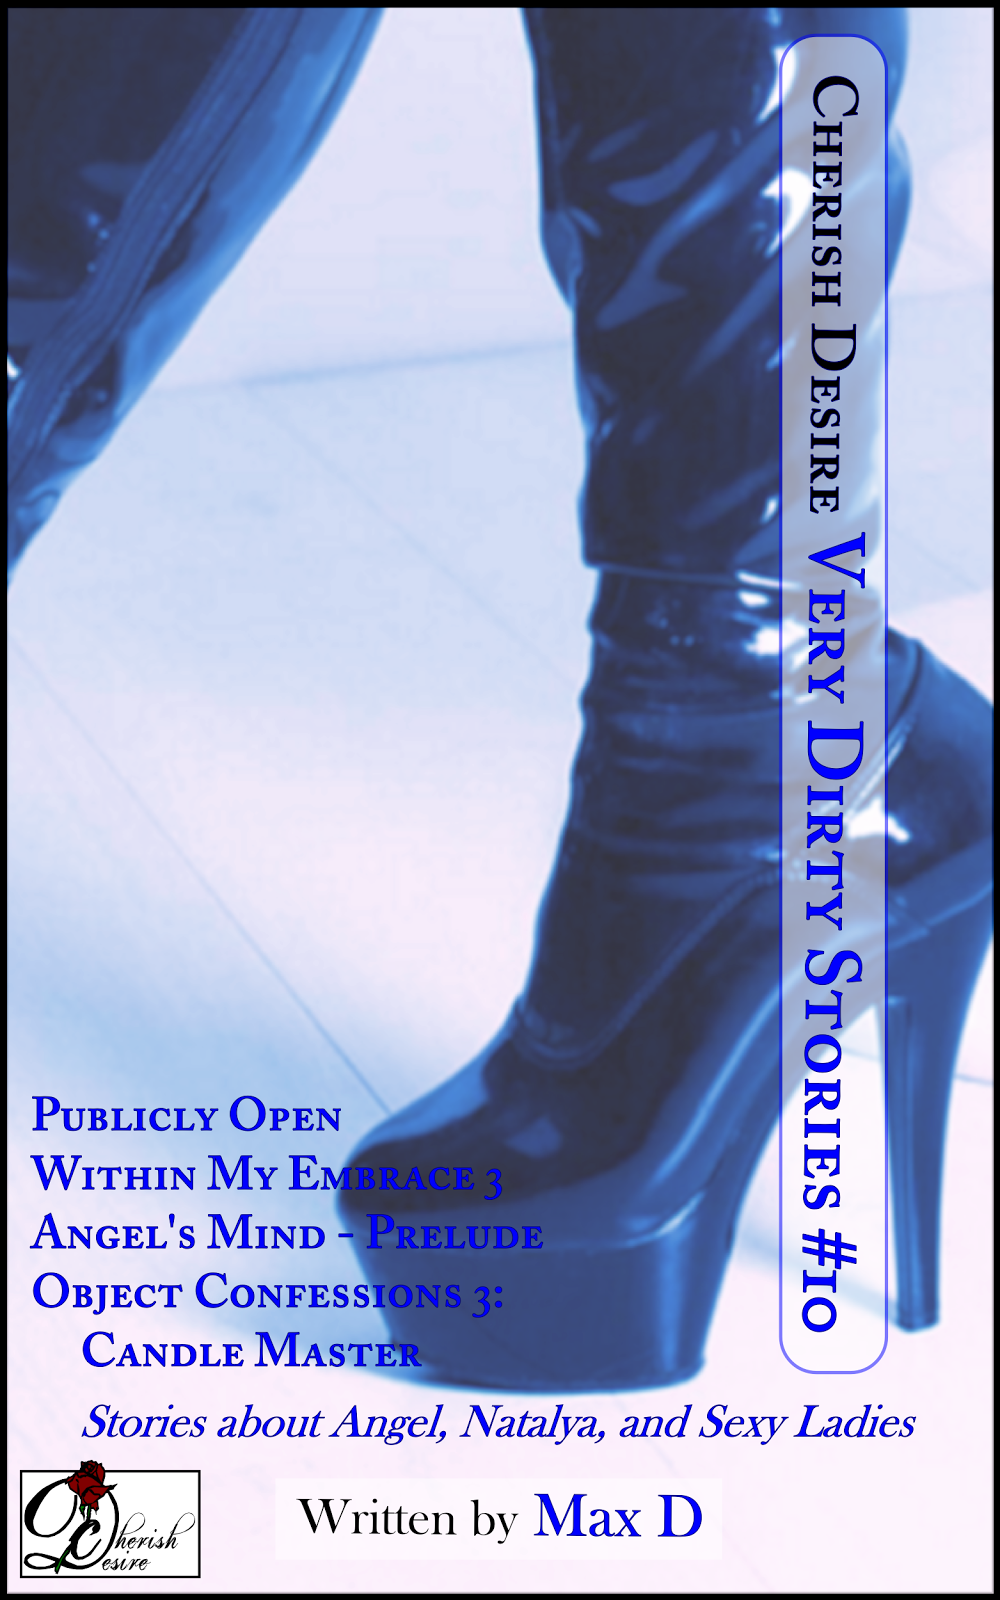 Cherish Desire: Very Dirty Stories #10, Max D, erotica